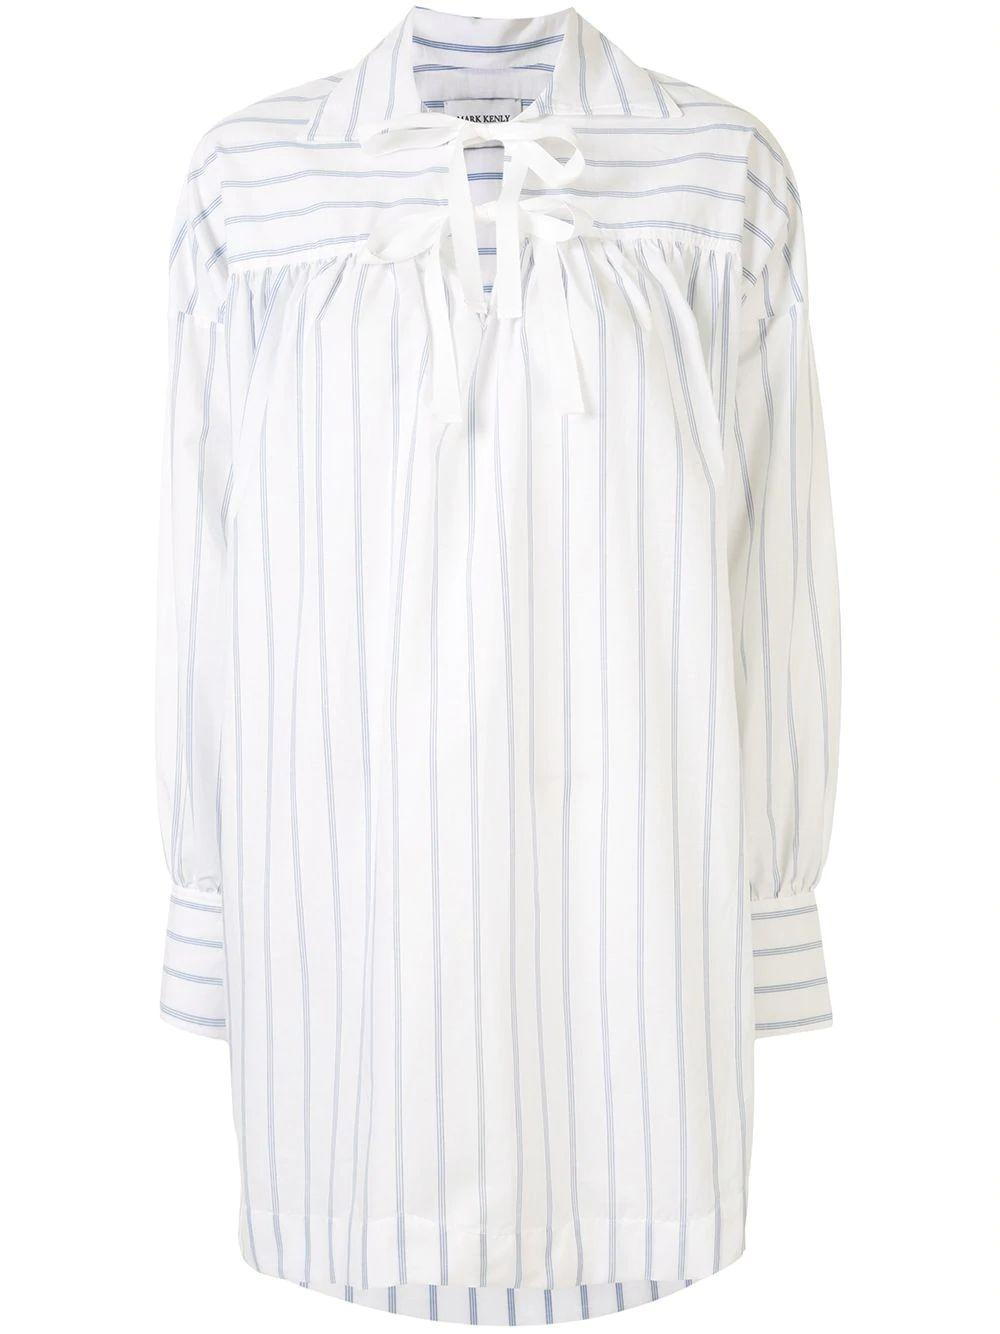 Dannyn Stripe Linen Top